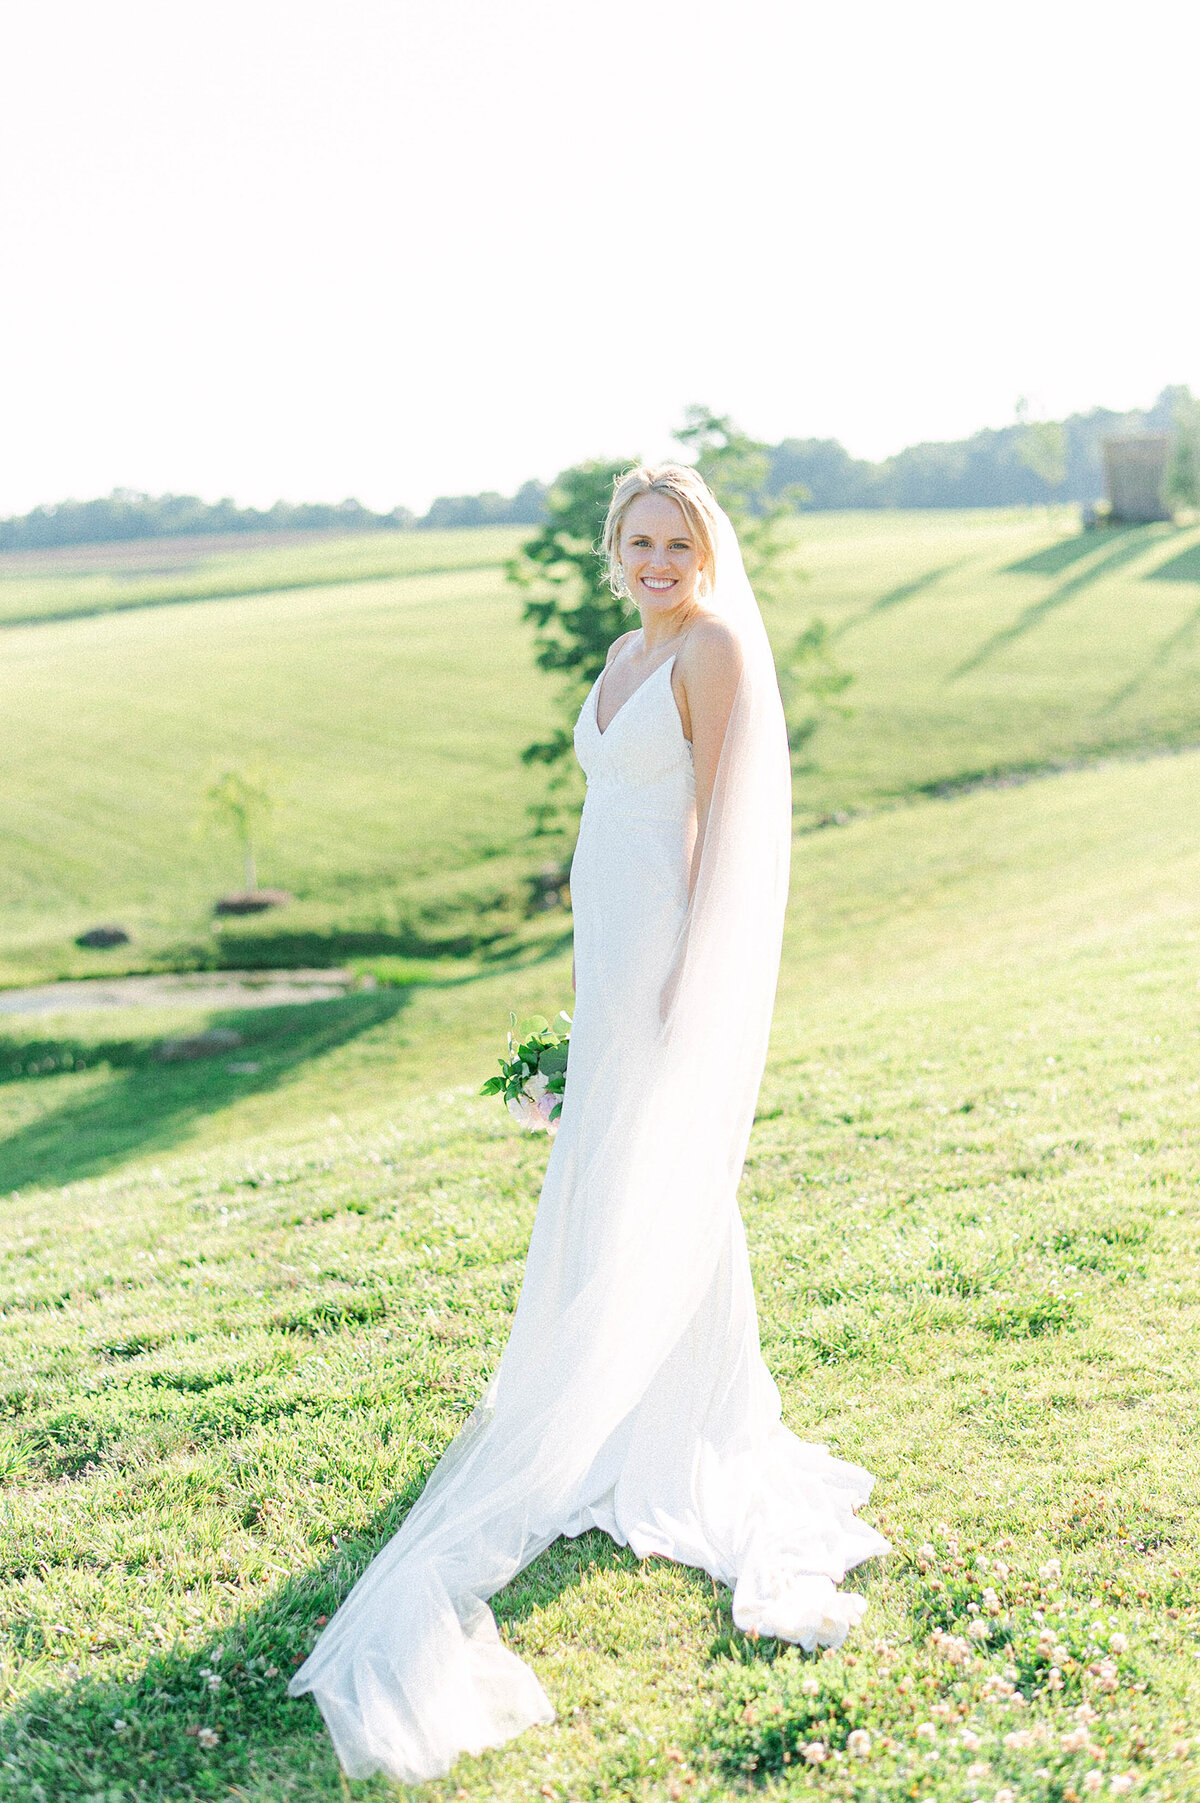 Jennifer Bosak Photography - DC Area Wedding Photography - DC, Virginia, Maryland - Kaitlyn + Jordan - Stone Tower Winery - 5